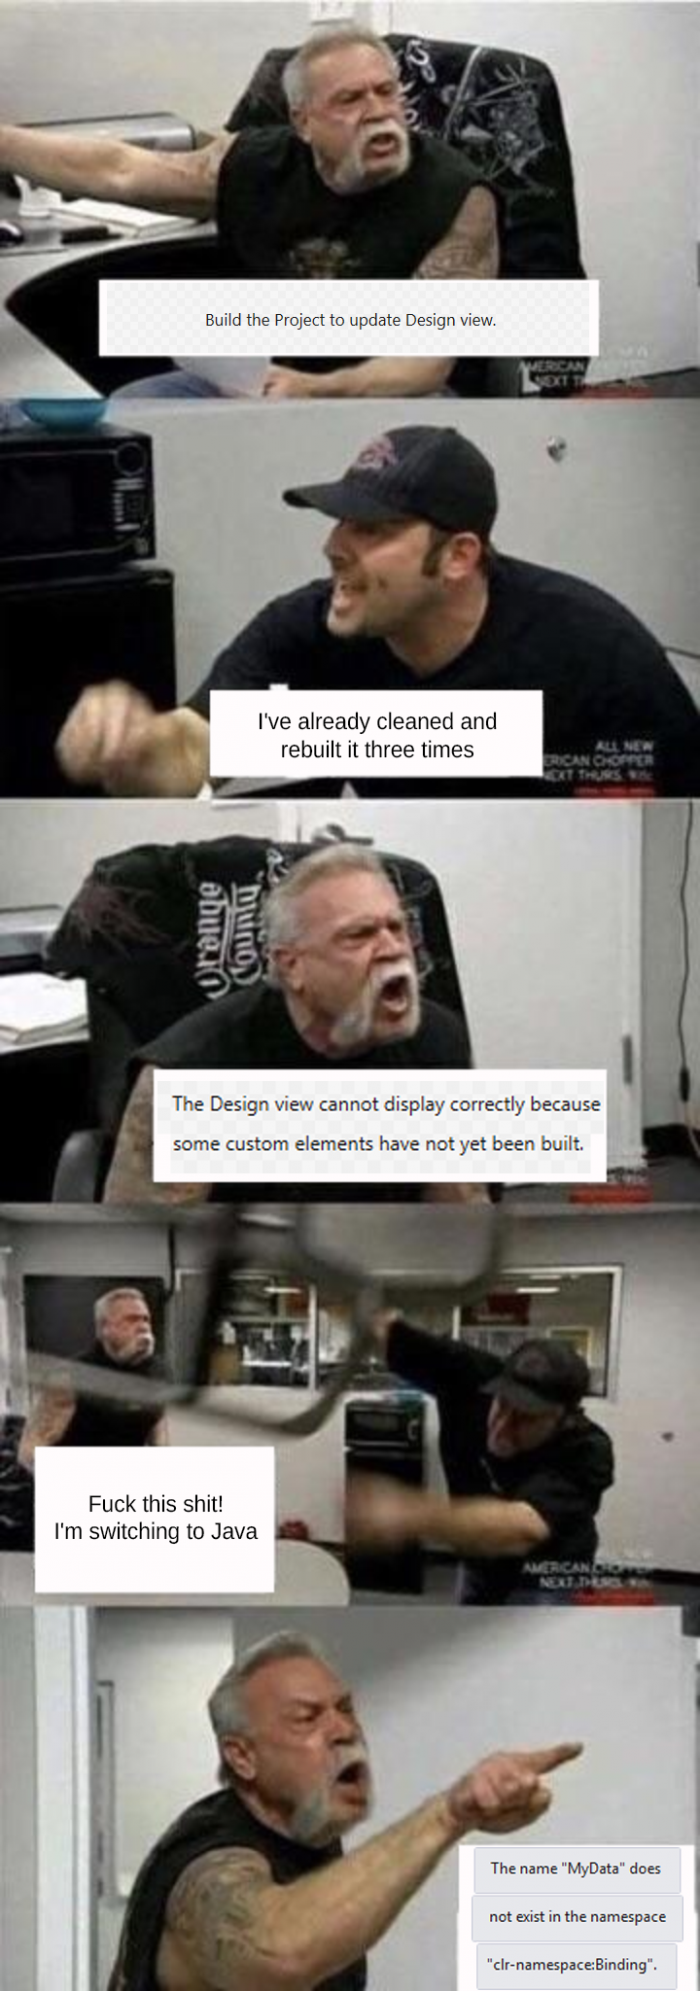 Designing XAML in Visual Studio be like